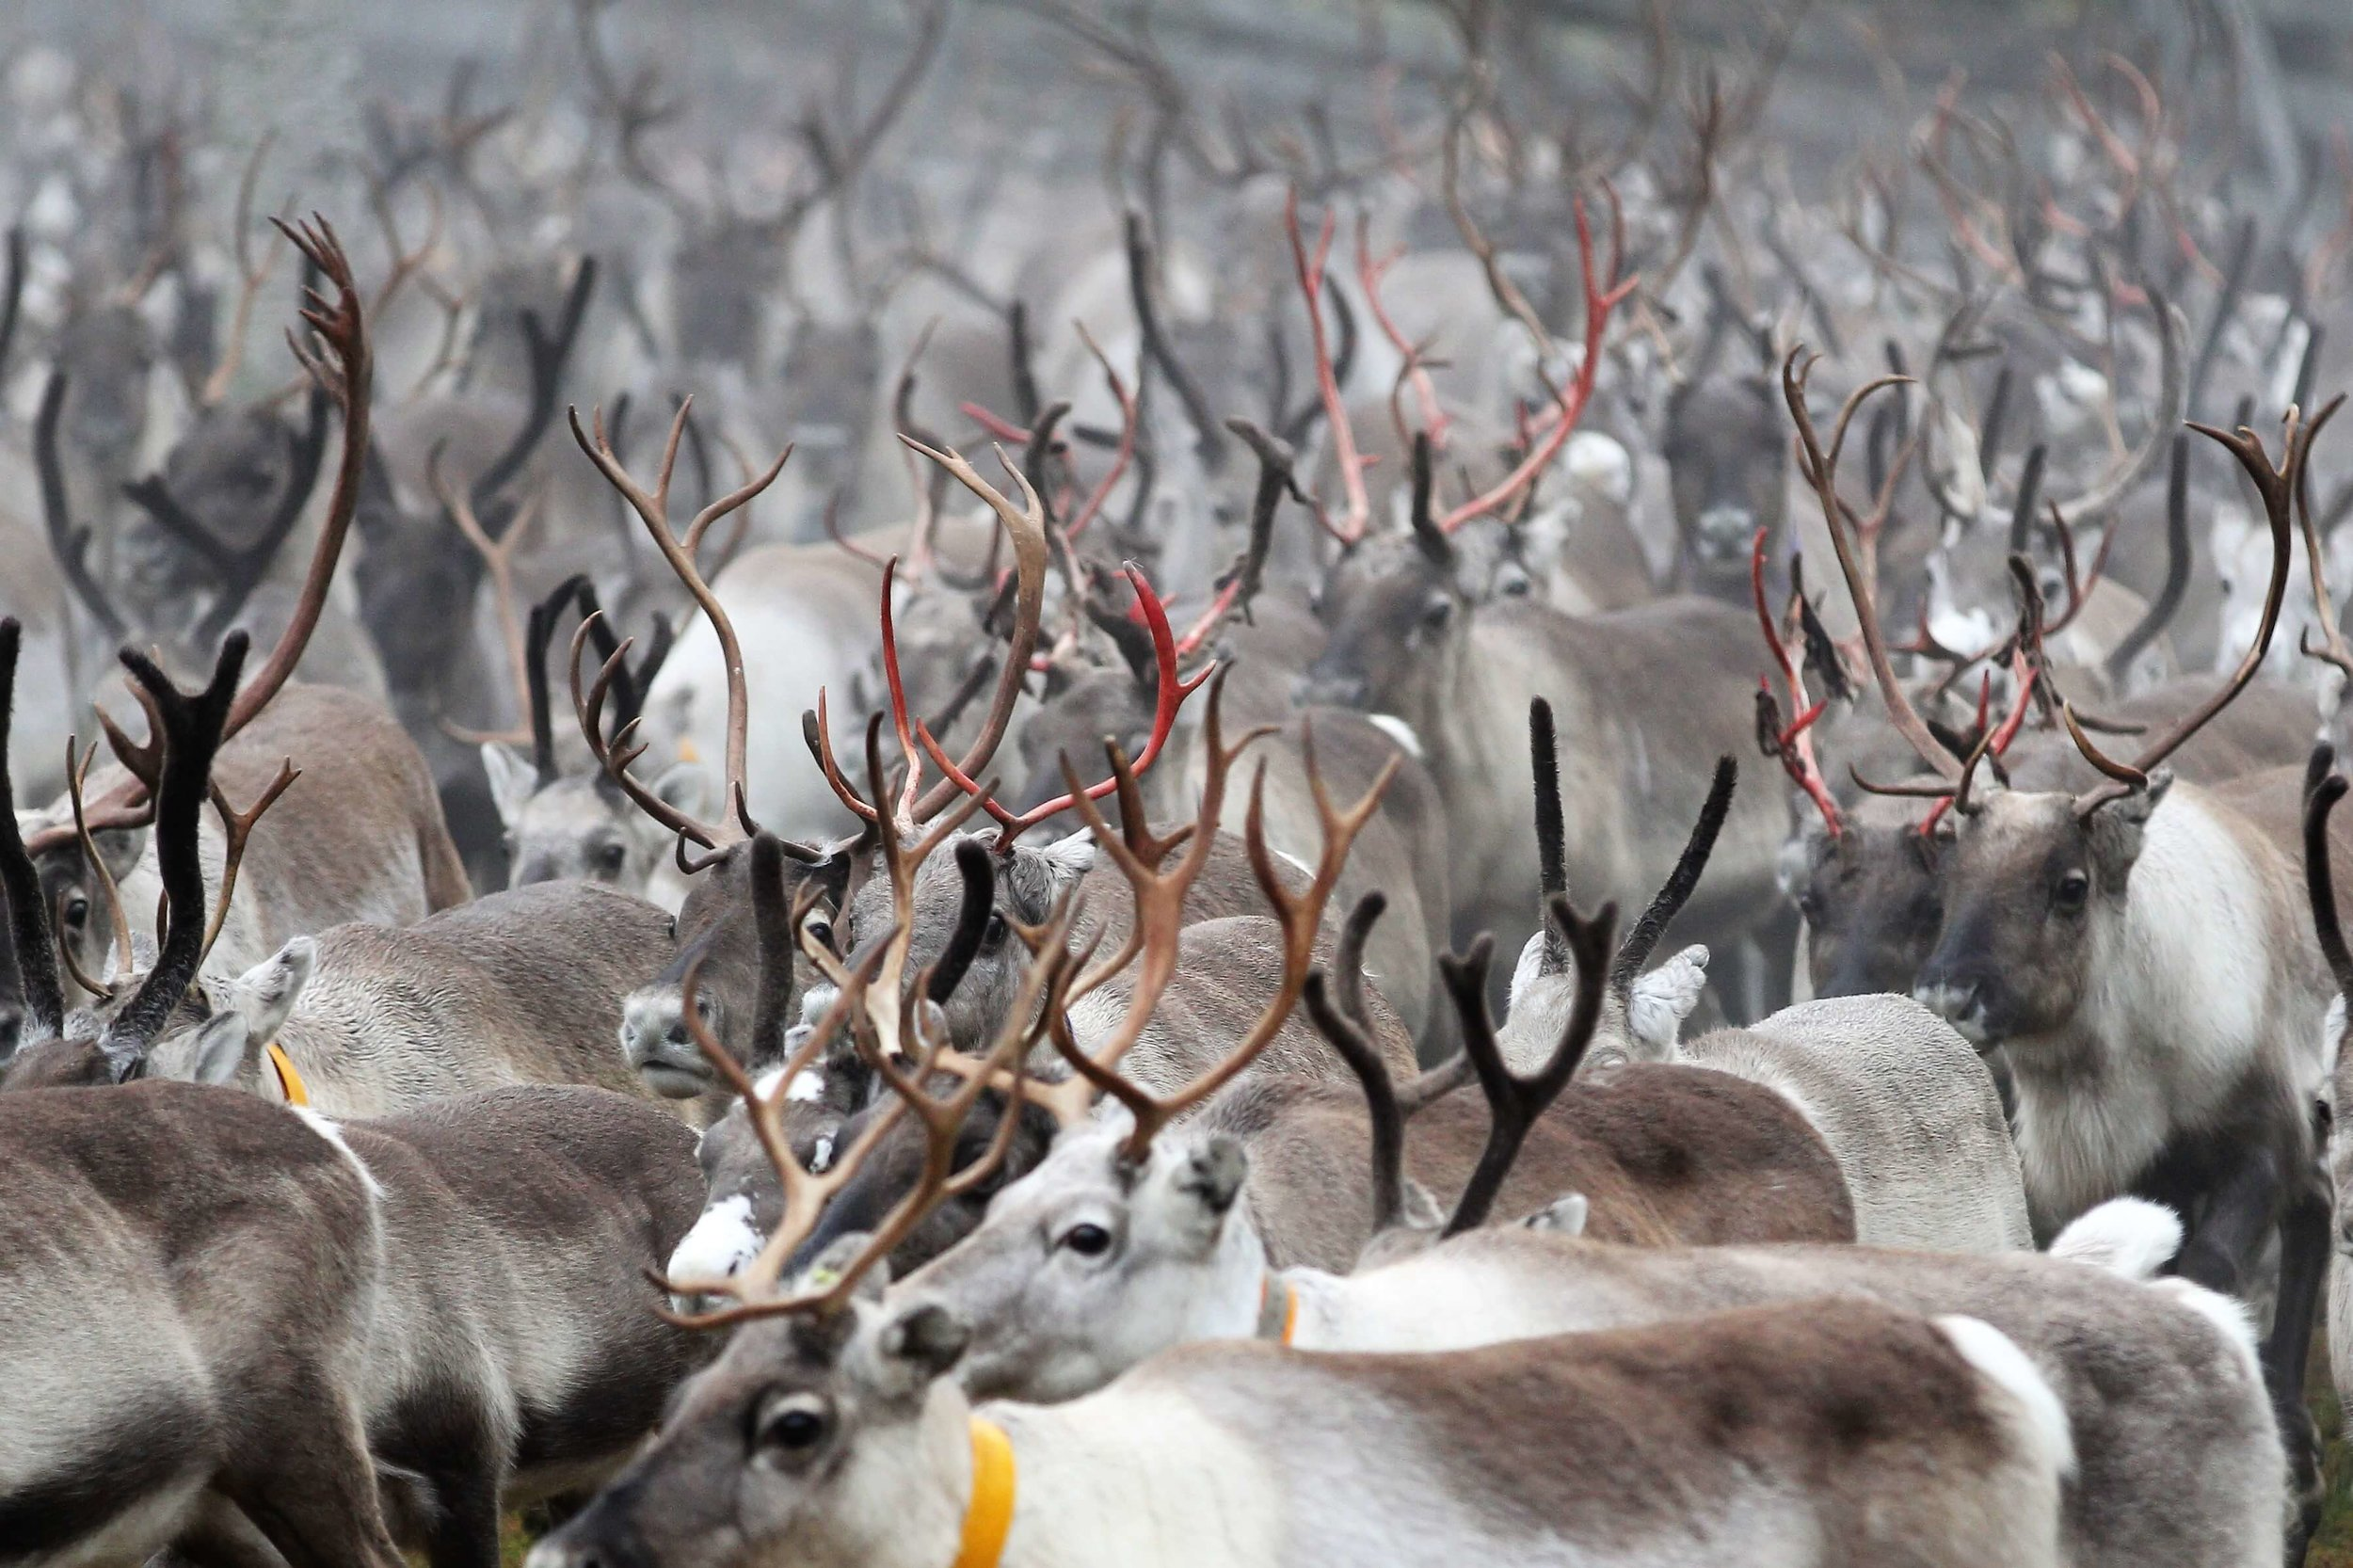 - In November the round-ups continue. The rut is over.Reindeers are moving towards their winter pastures.The males shed their antlers after the rug.Eating plants and mushrooms.The roads are being salted in order to reduce the slippery. The road salt draws the reindeers to the roads.